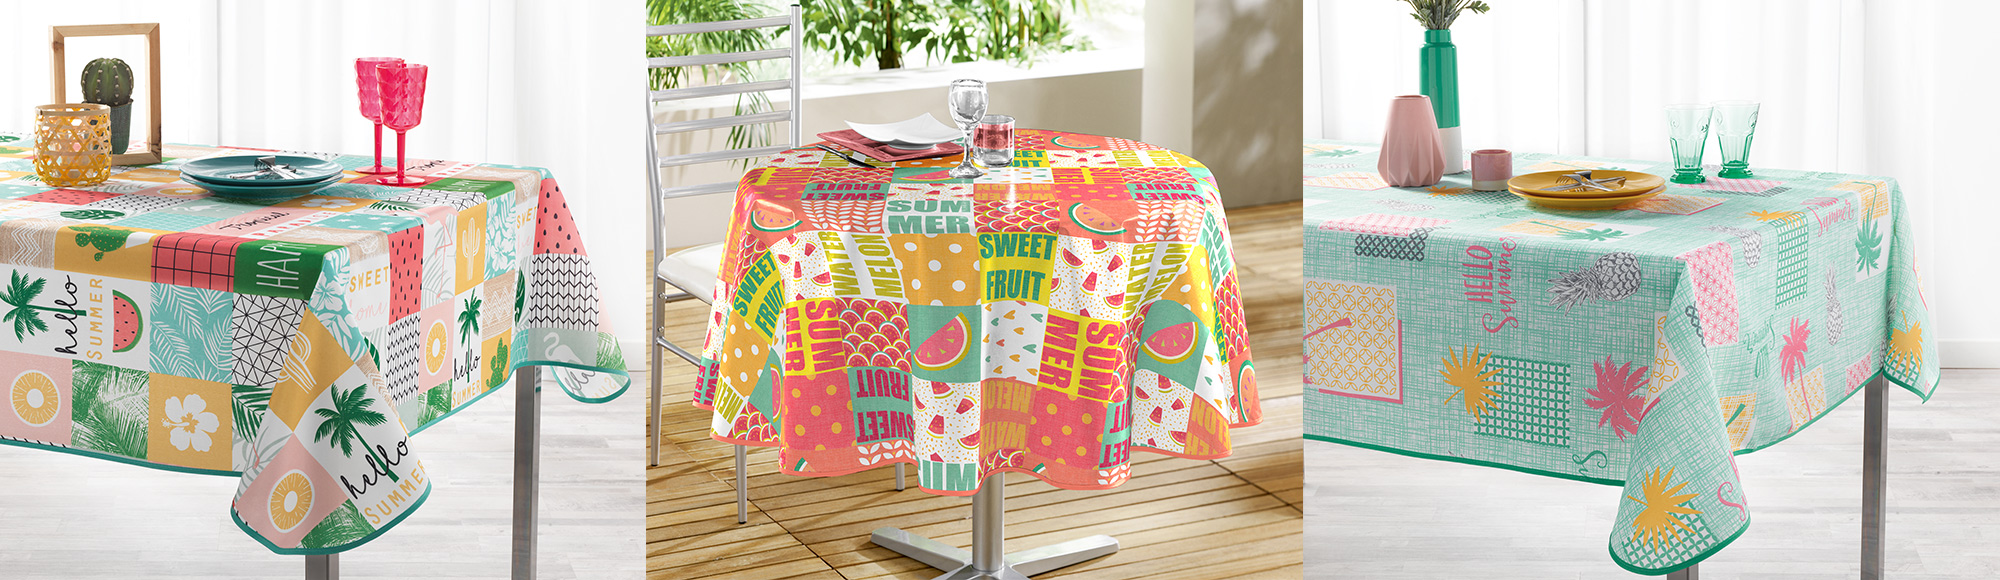 U10 - fournisseur en decoration - douceur d'interieur - linge de table nappes - printemps ete 2020